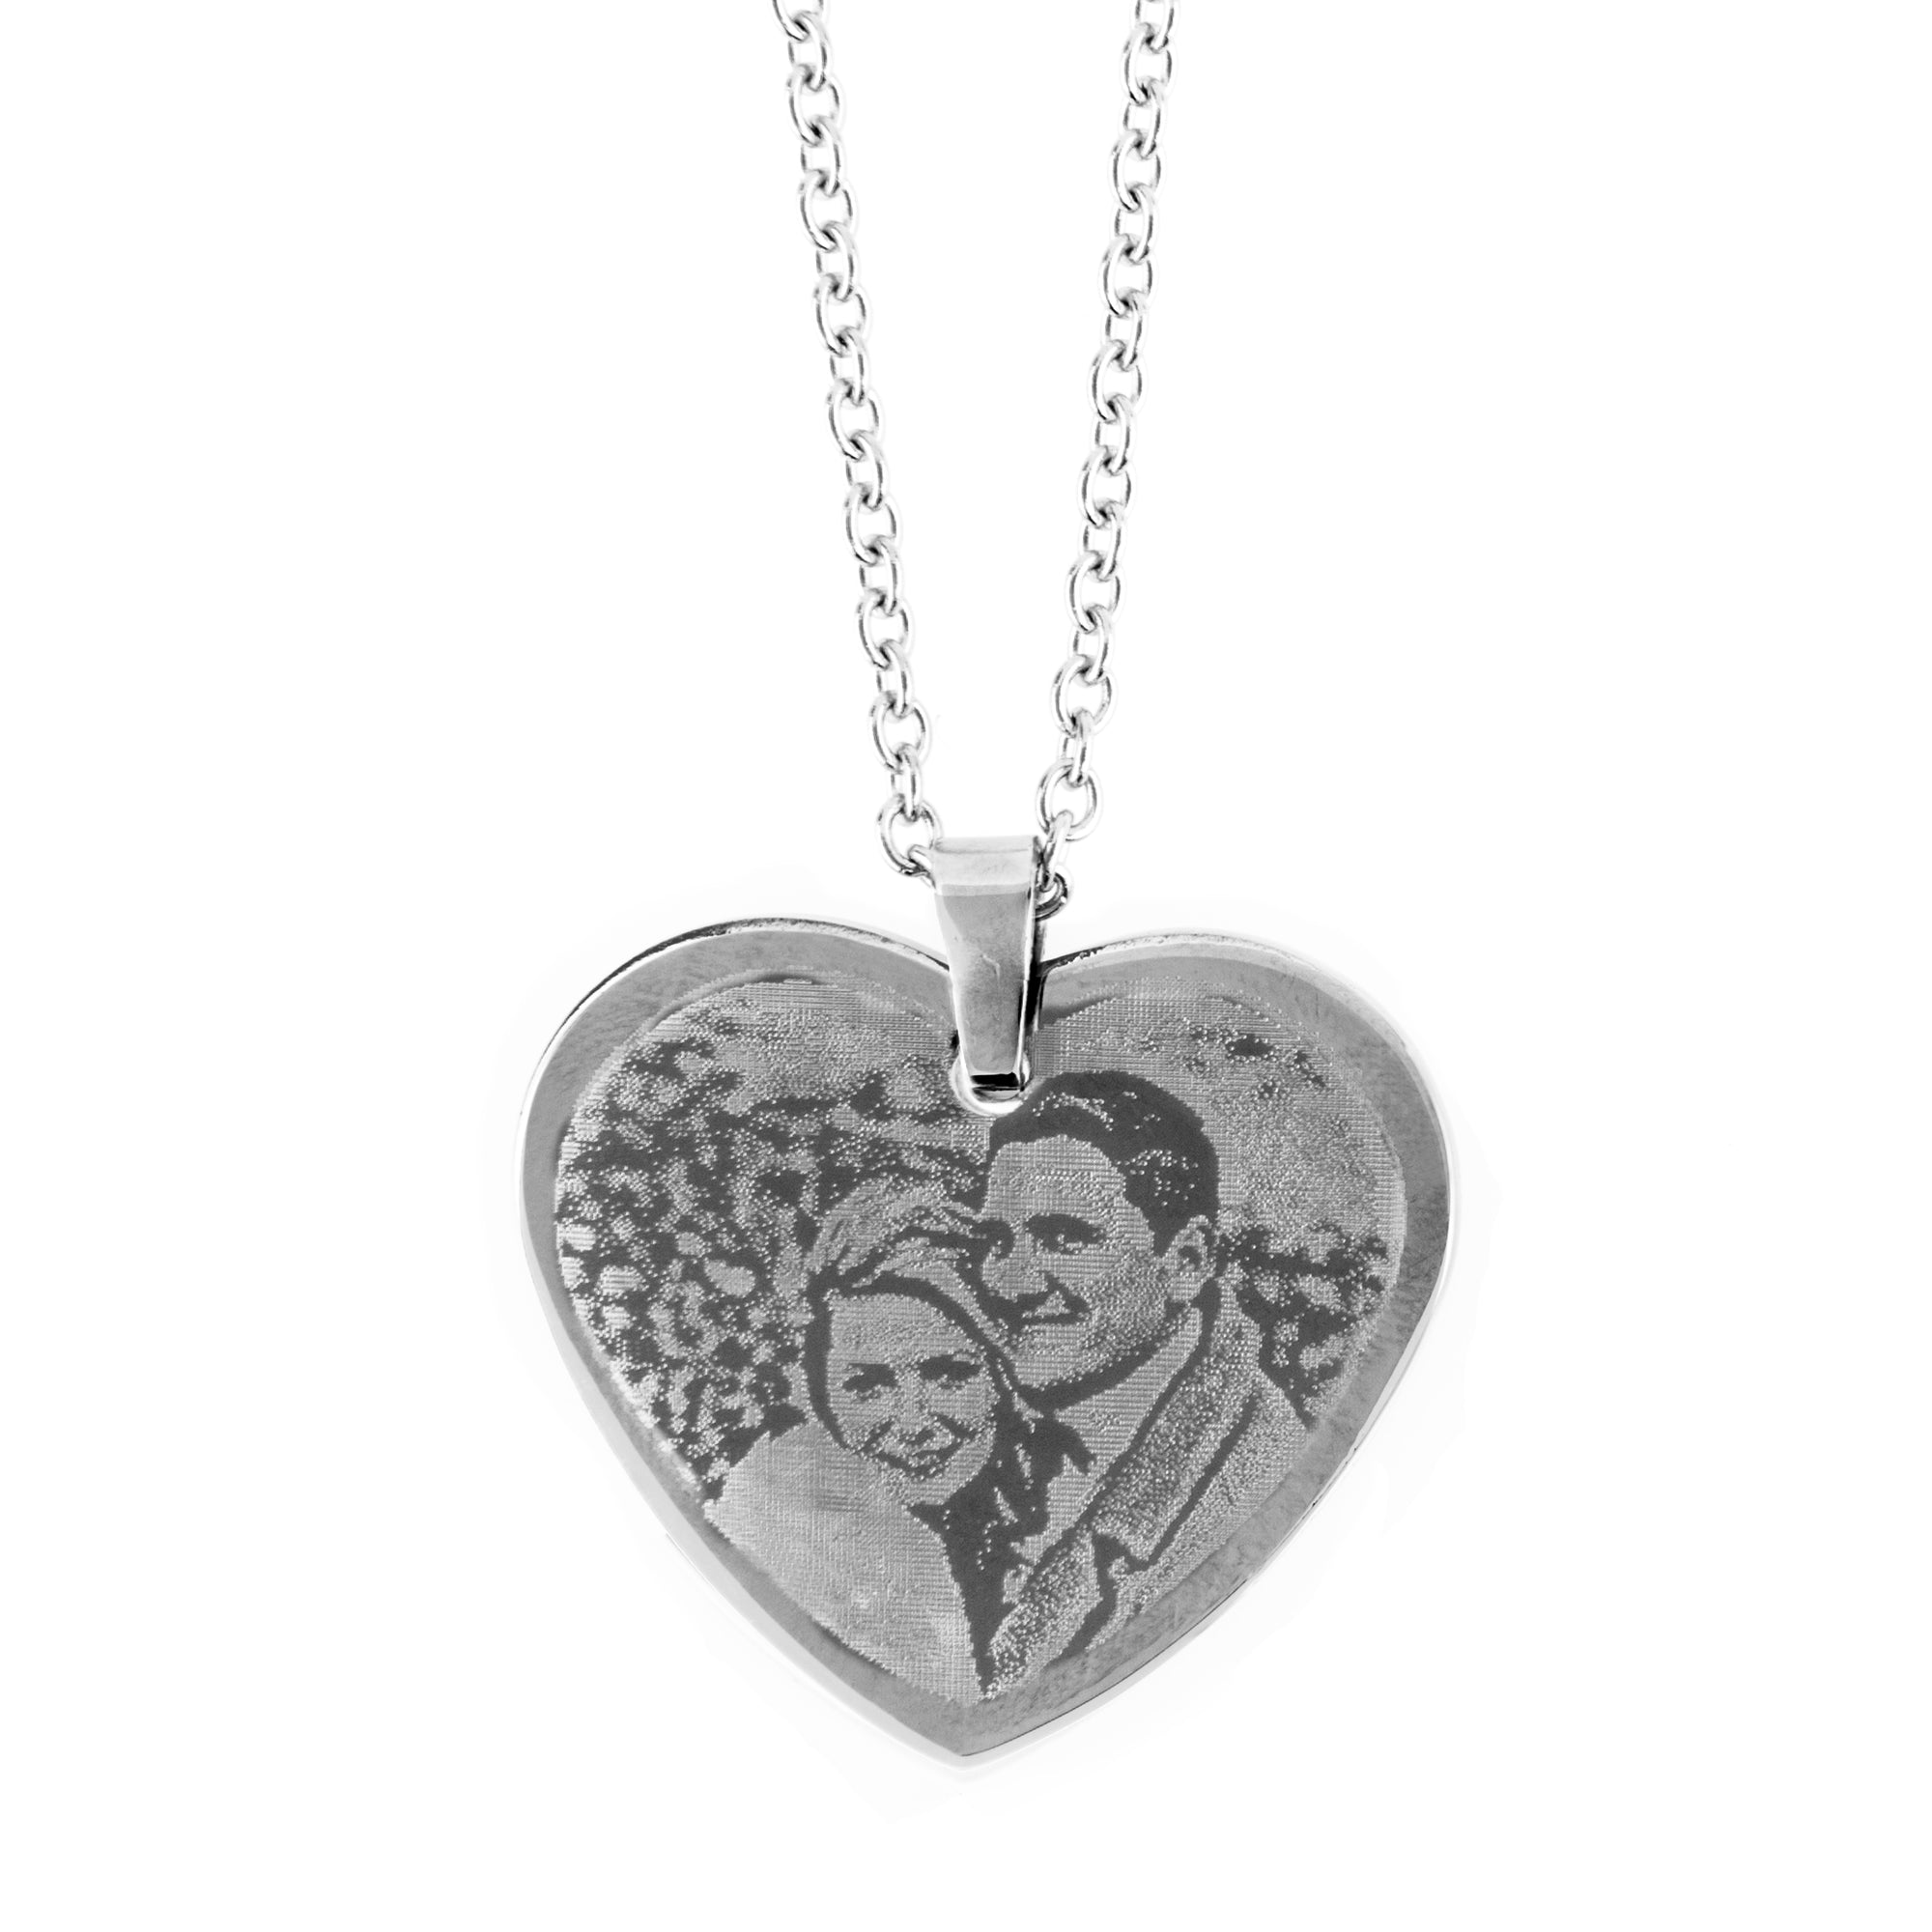 Photo Engraving SS Heart Pendant on Chain